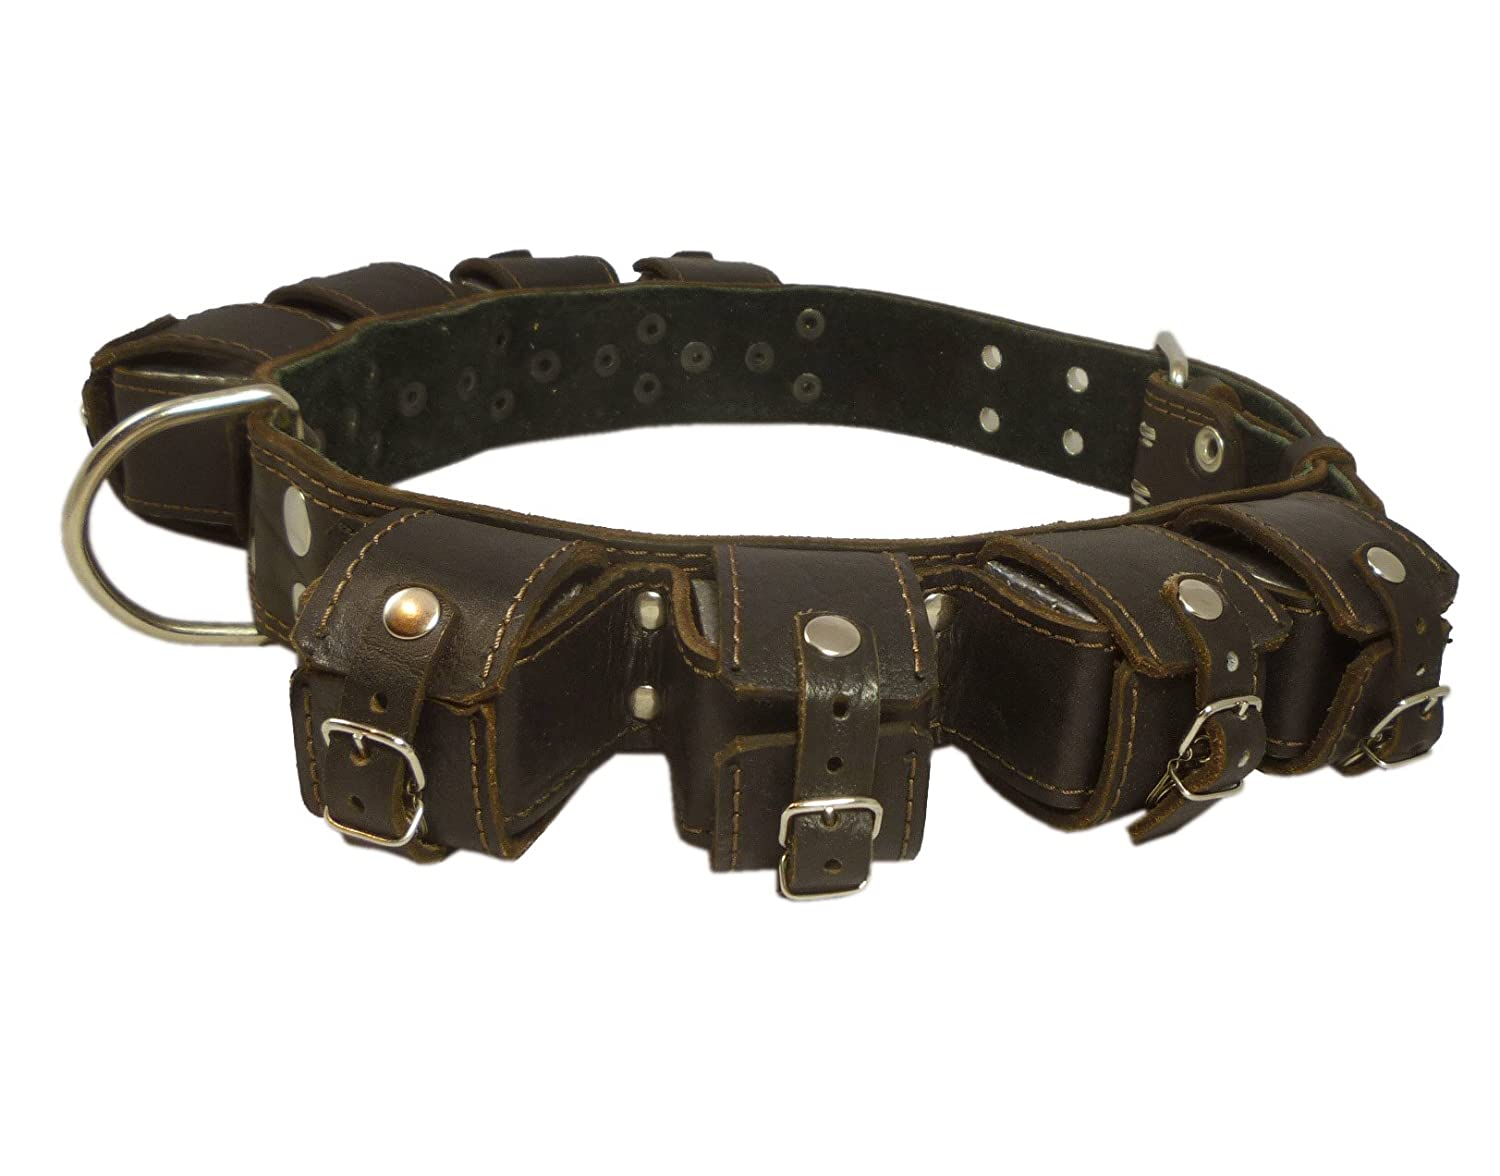 8lbs Genuine Leather Weighted Dog Collar 2 Wide. Exercise and Training. Fits 24 -30 Neck Size